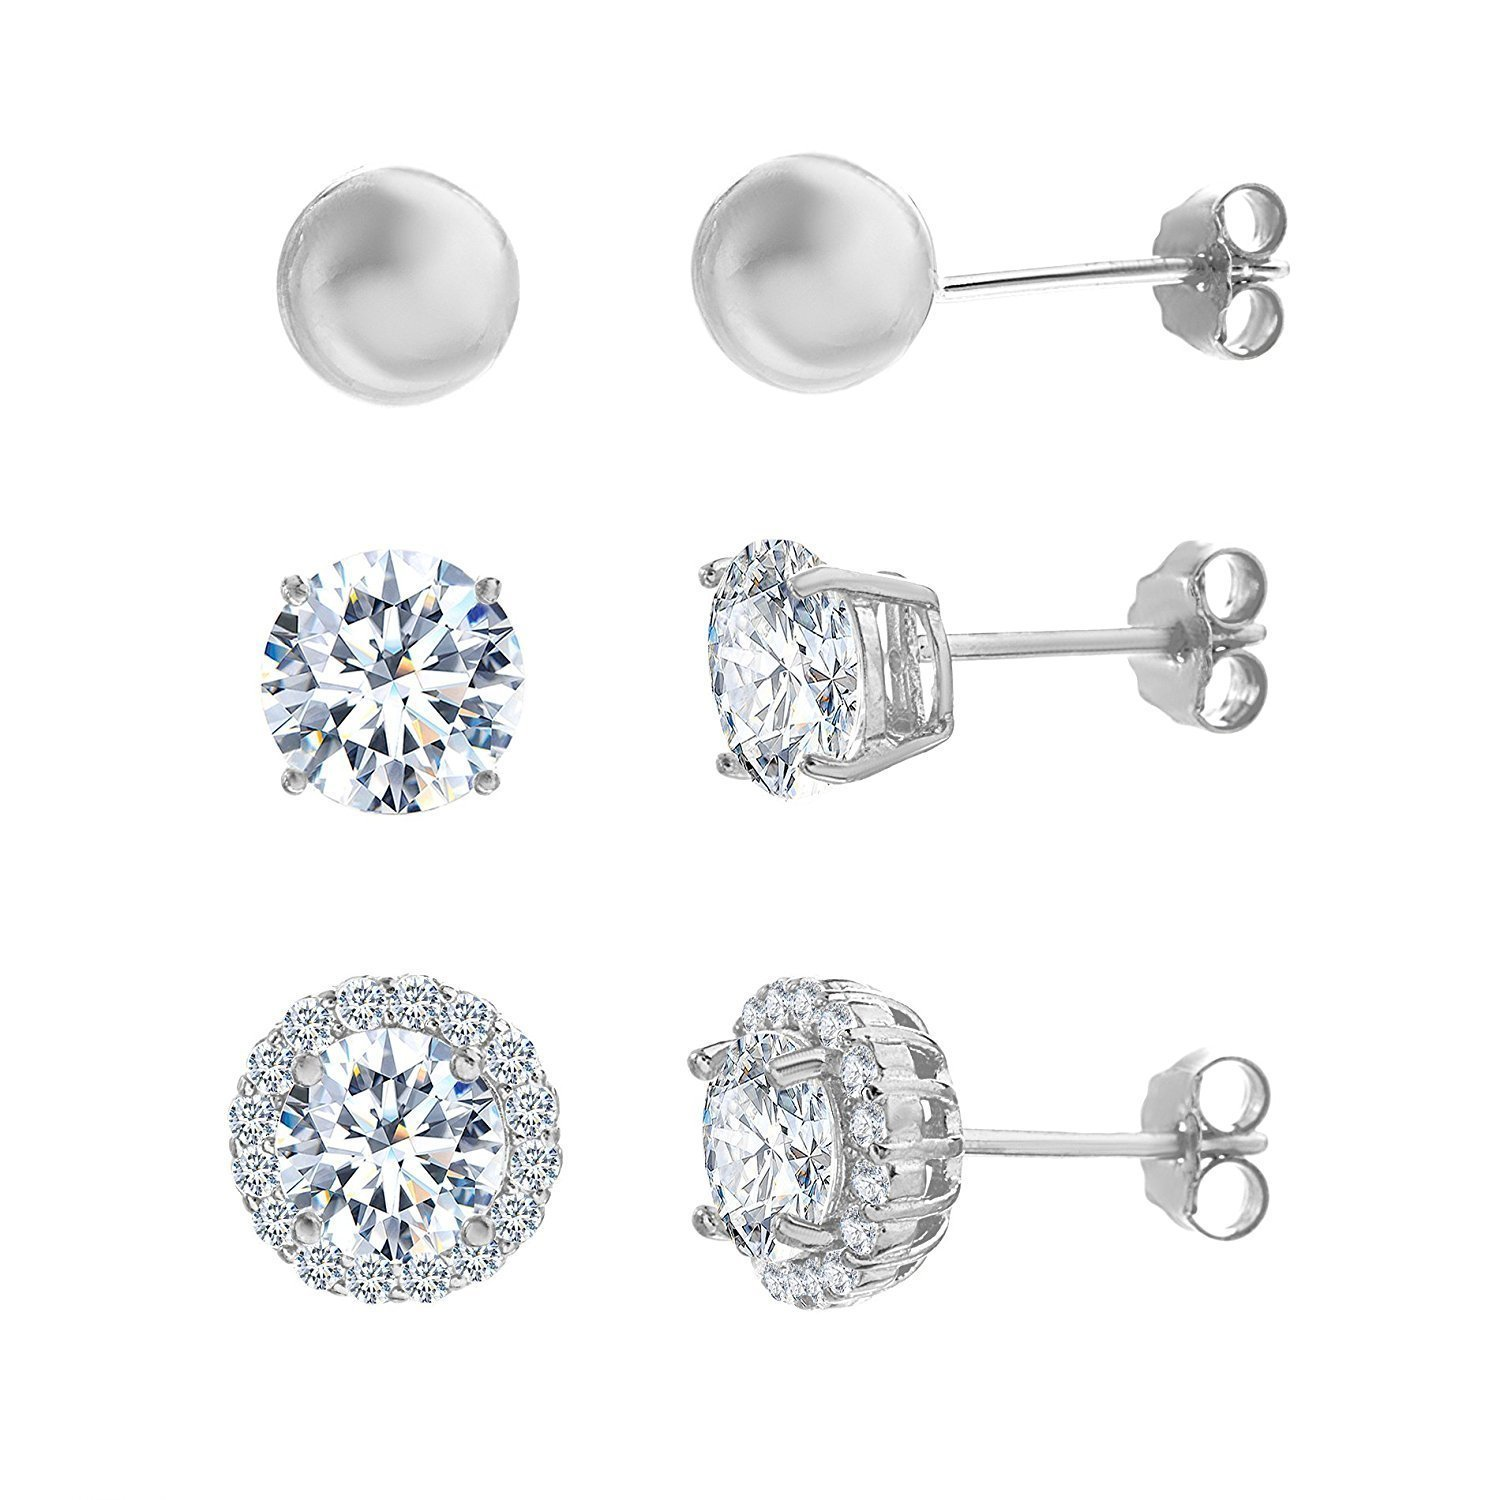 d7acd0639fc438 Amazon.com: Lesa Michele Cubic Zirconia Stud Earring Set in Sterling Silver,  3 Piece: Jewelry